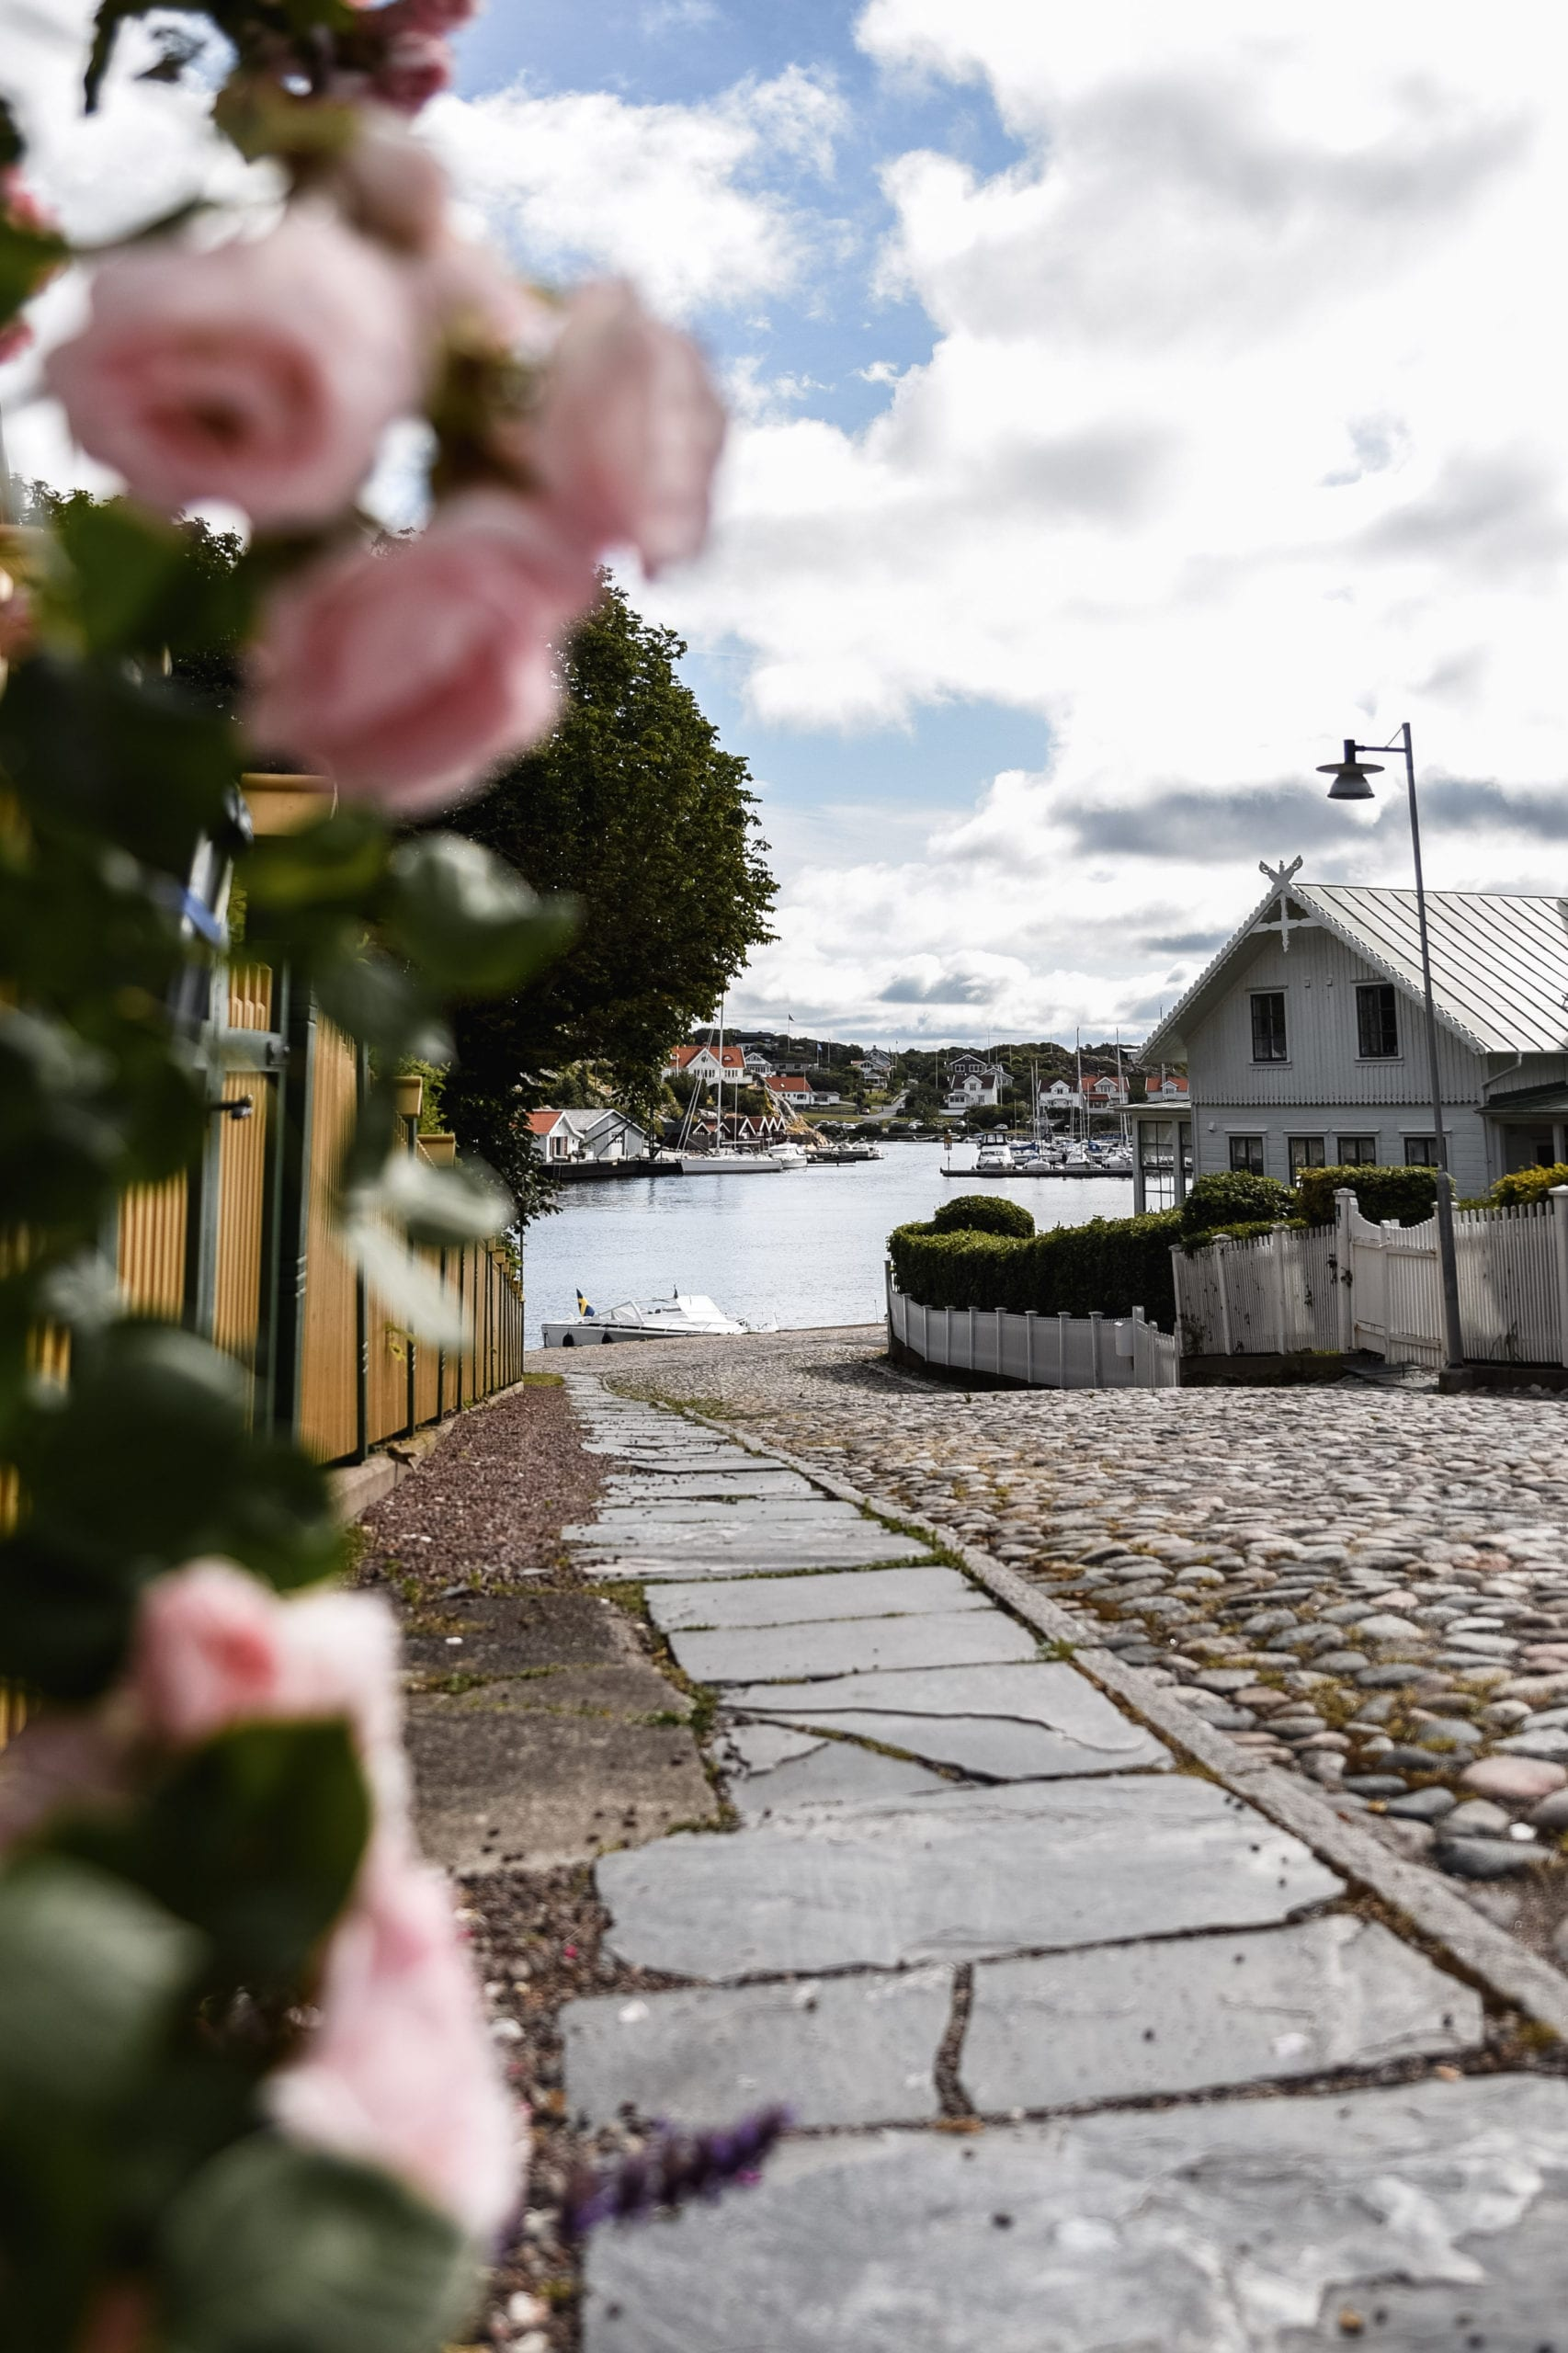 A Slow Travel Guide To West Sweden And The Bohuslän Archipelago - Marstrand